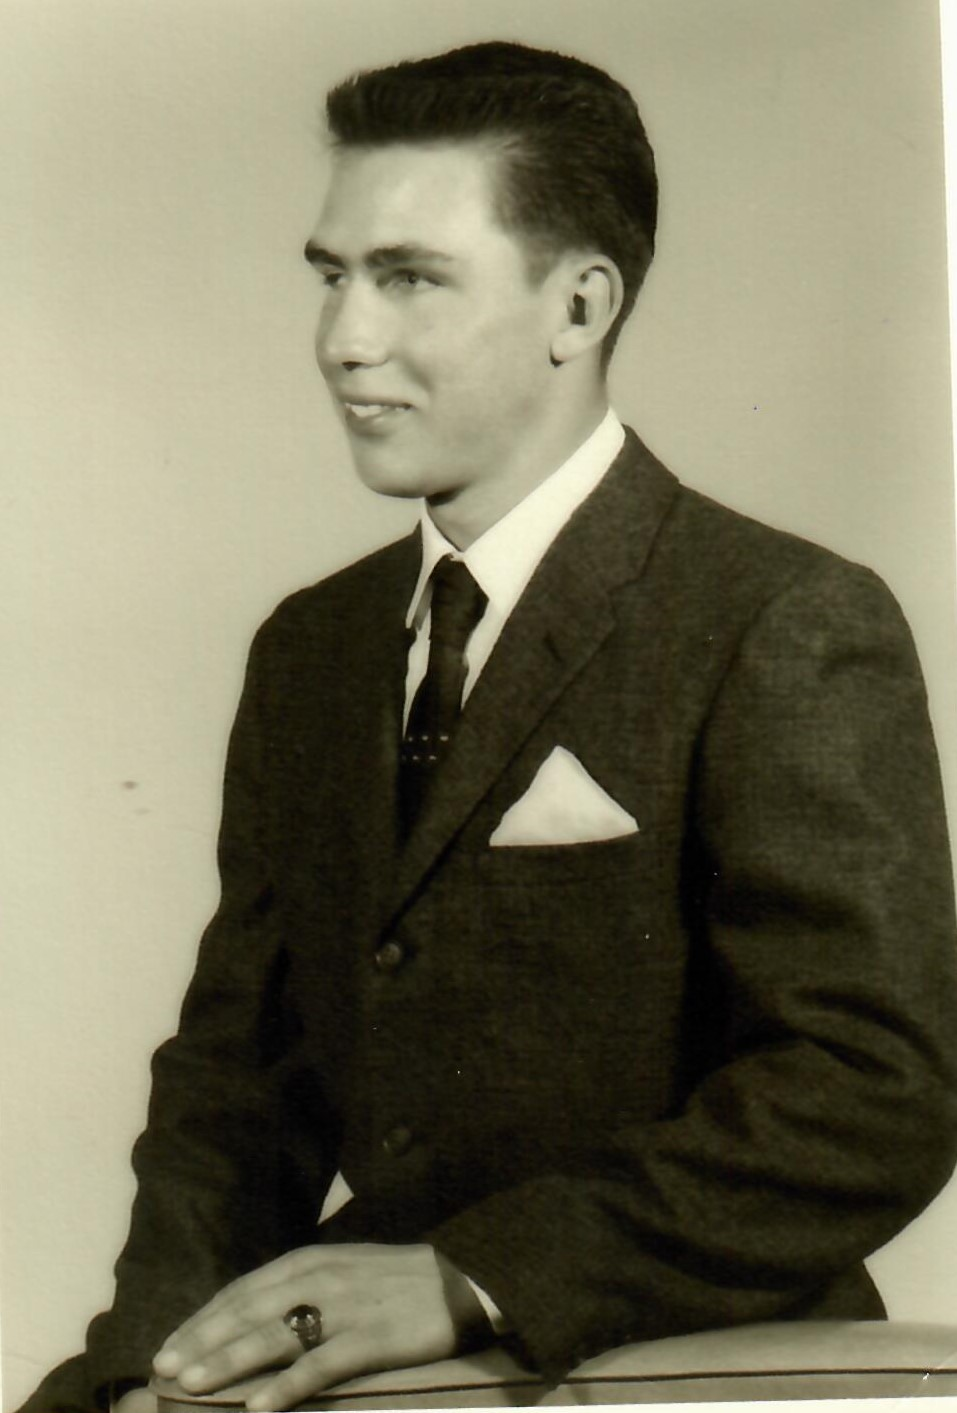 Ted Norman Scroggs